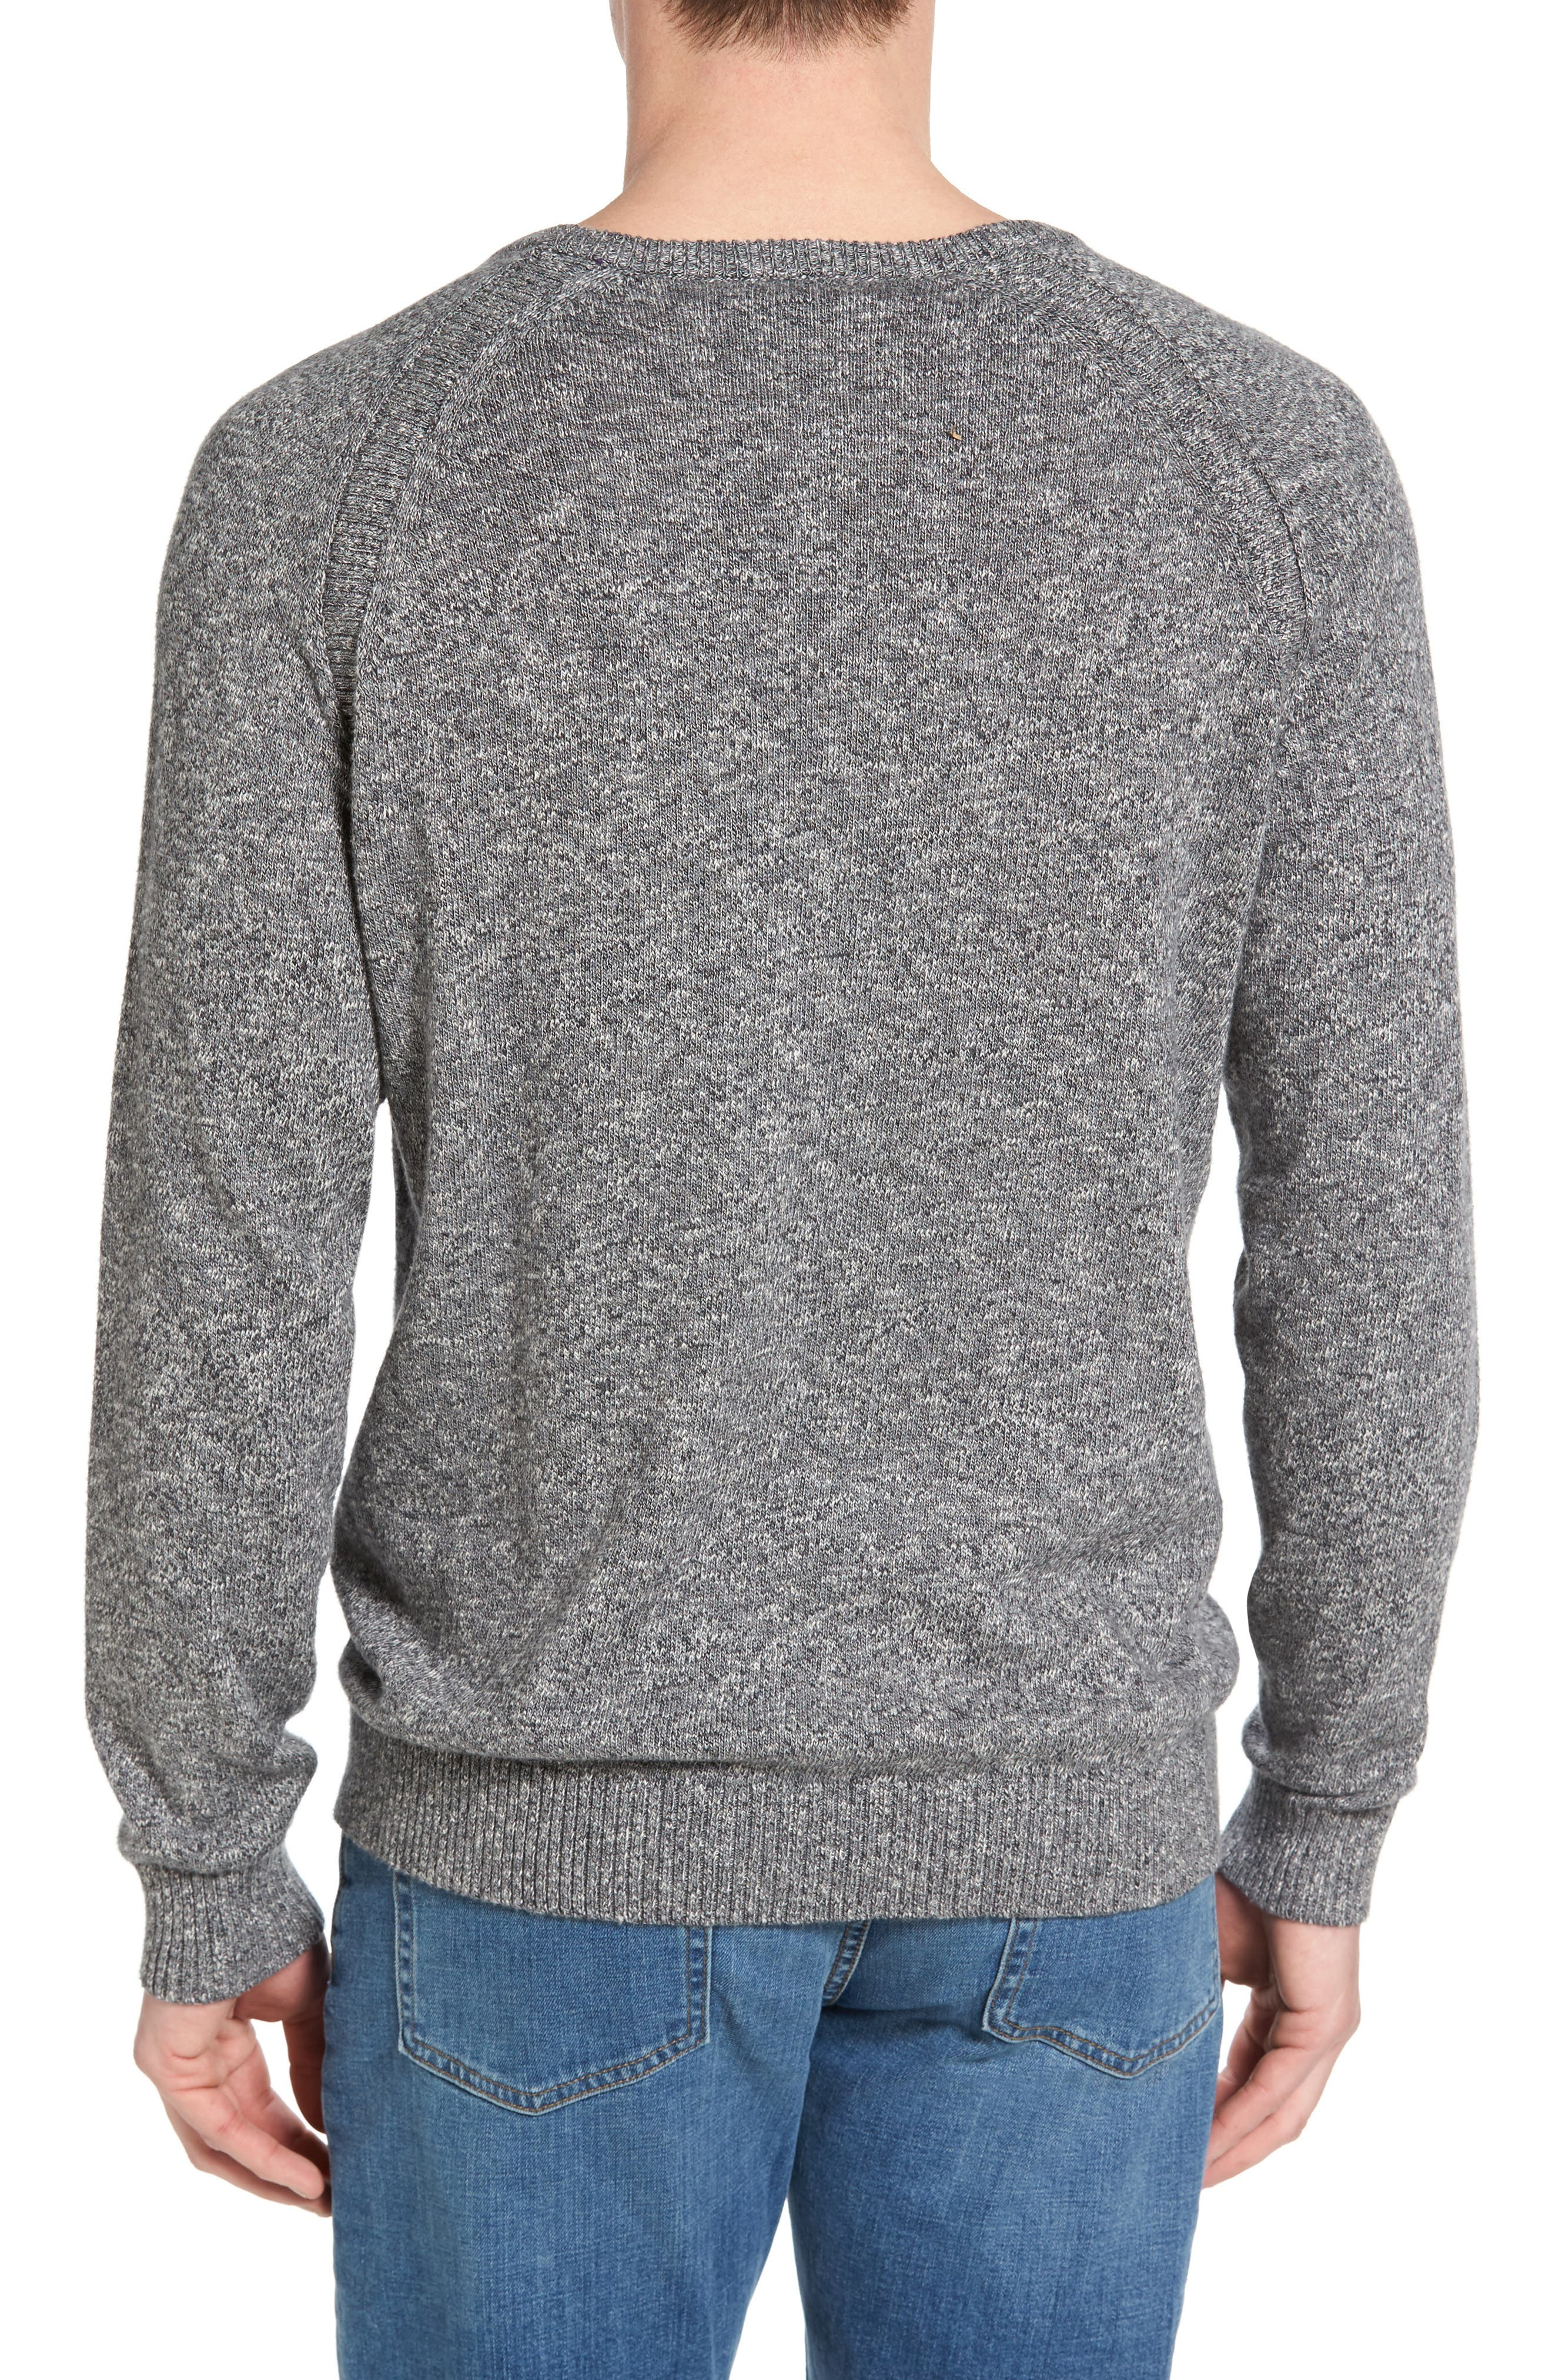 Chilton Sweater,                             Alternate thumbnail 2, color,                             088